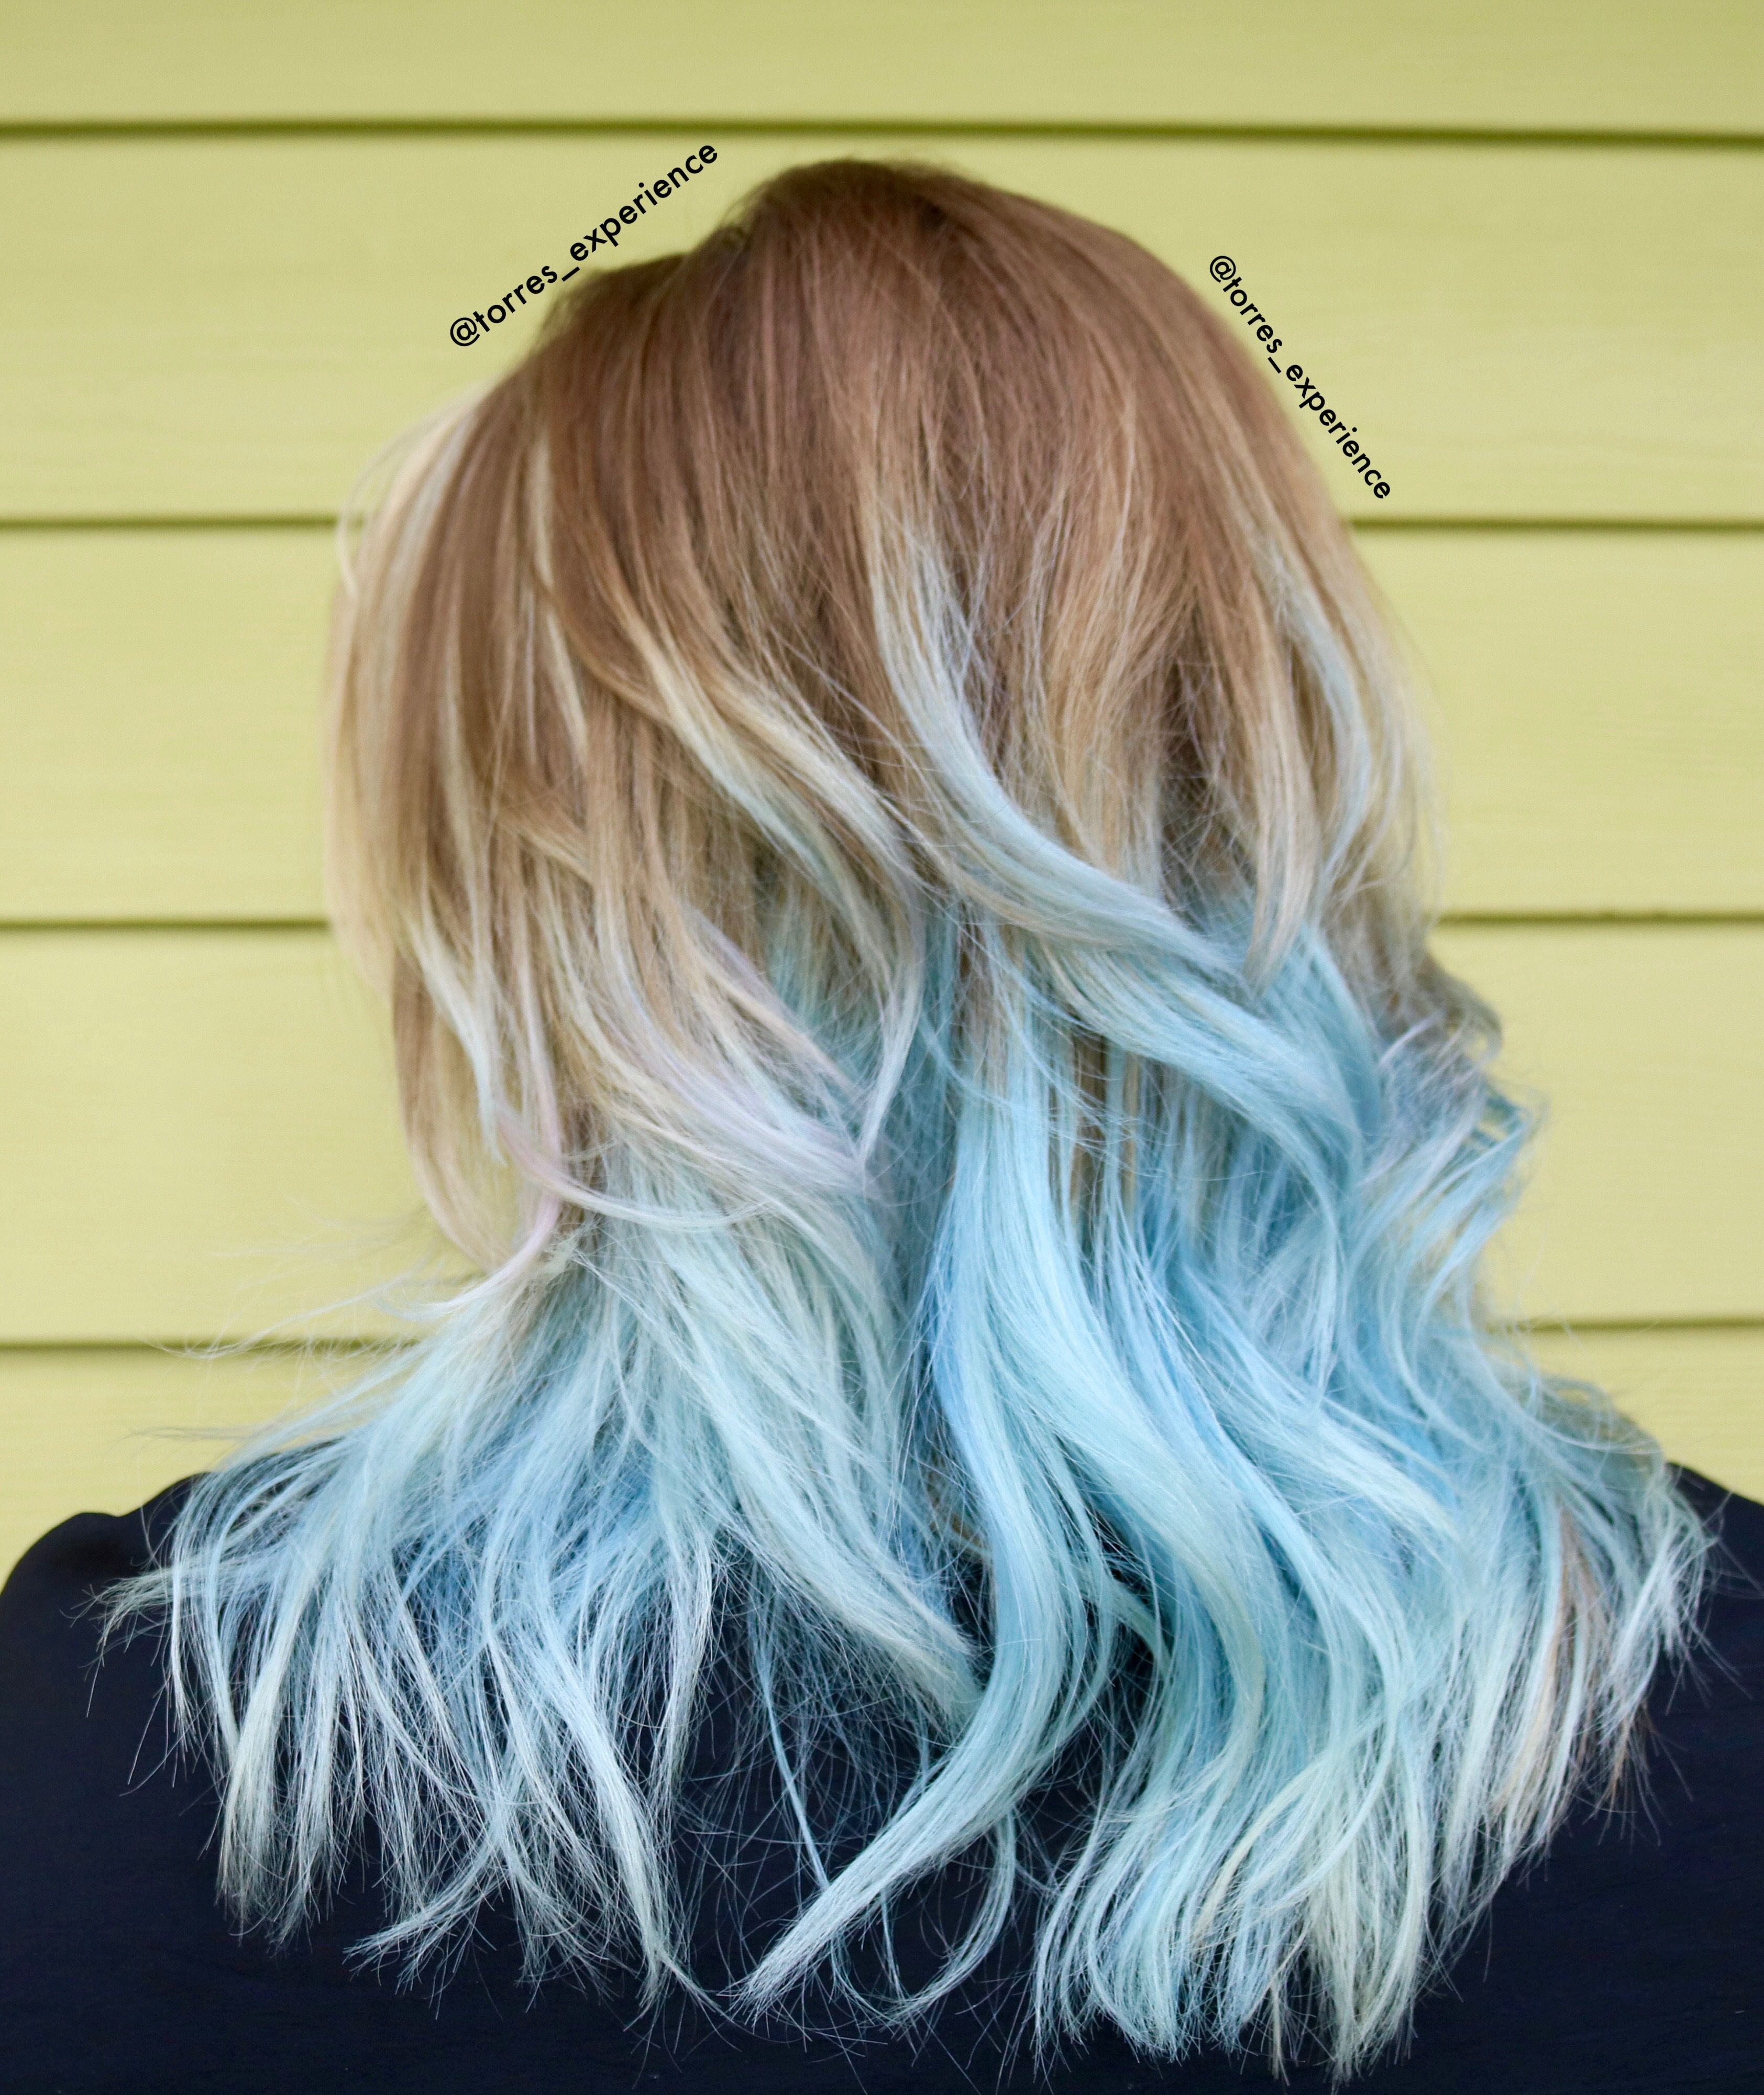 widescreen blonde hair with blue dip dye for dress iphone high quality pastel frozen the torres experience by amanda